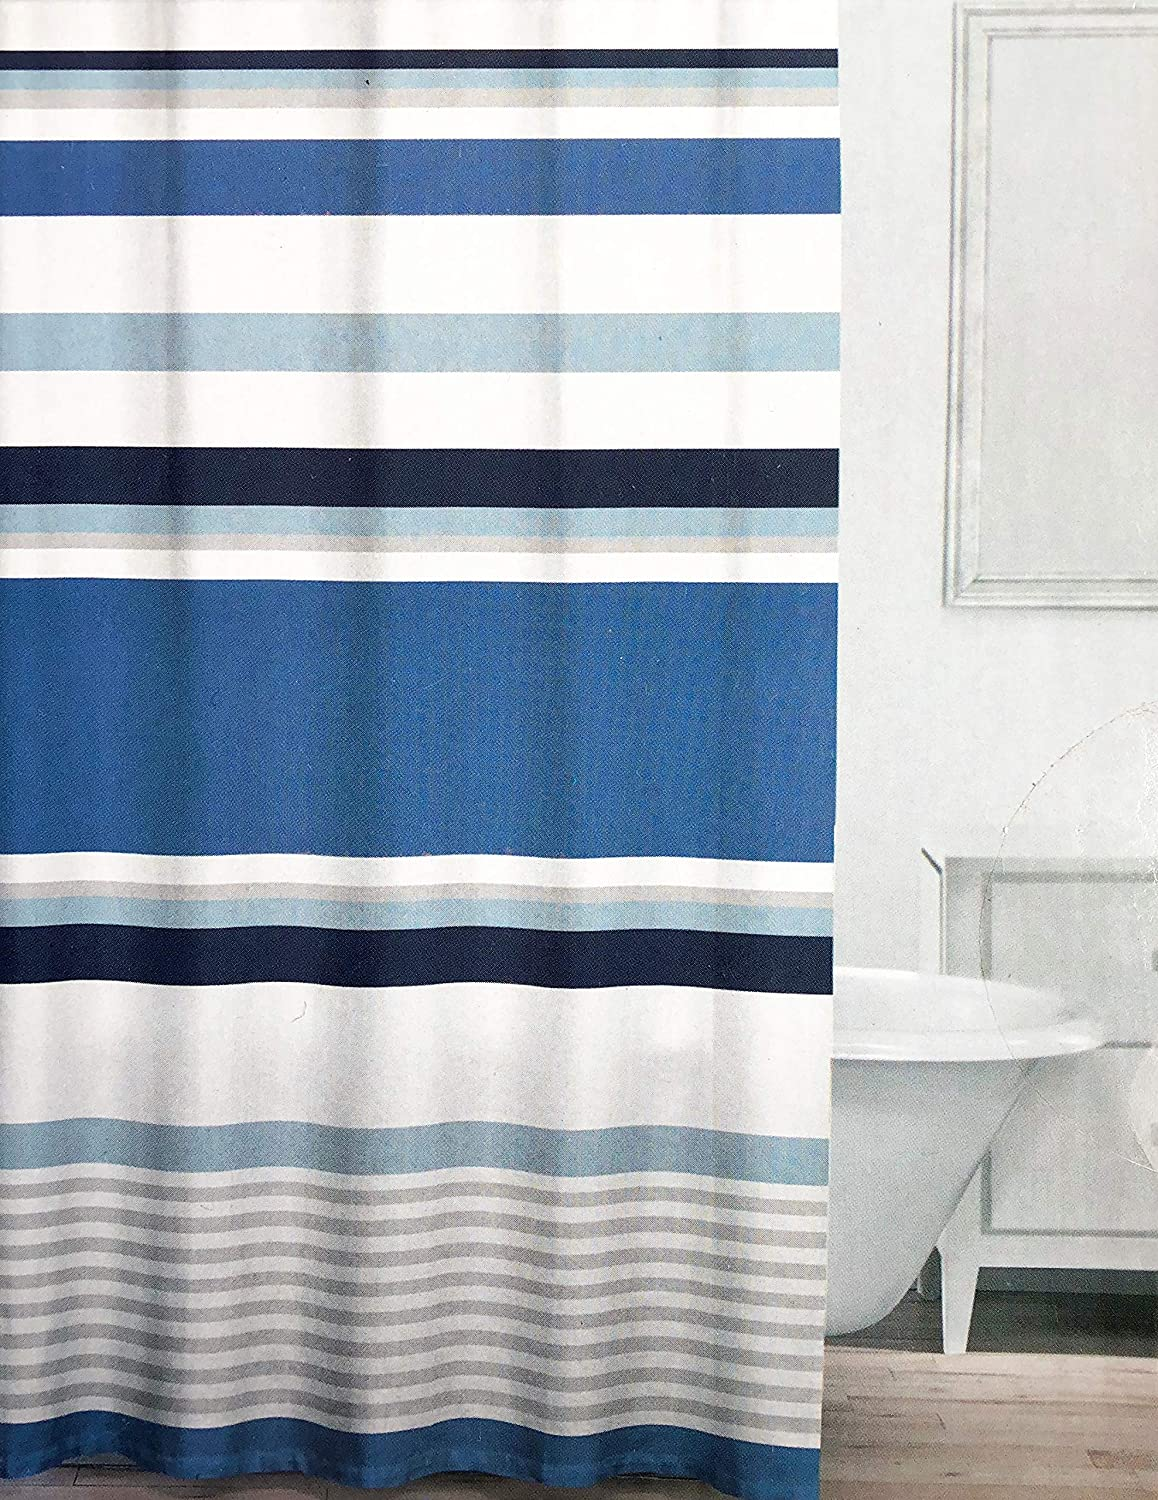 Caro Fabric Shower Curtain Horizontal Stripes in Shades of Blue and Gray on White - Chelsea, Denim